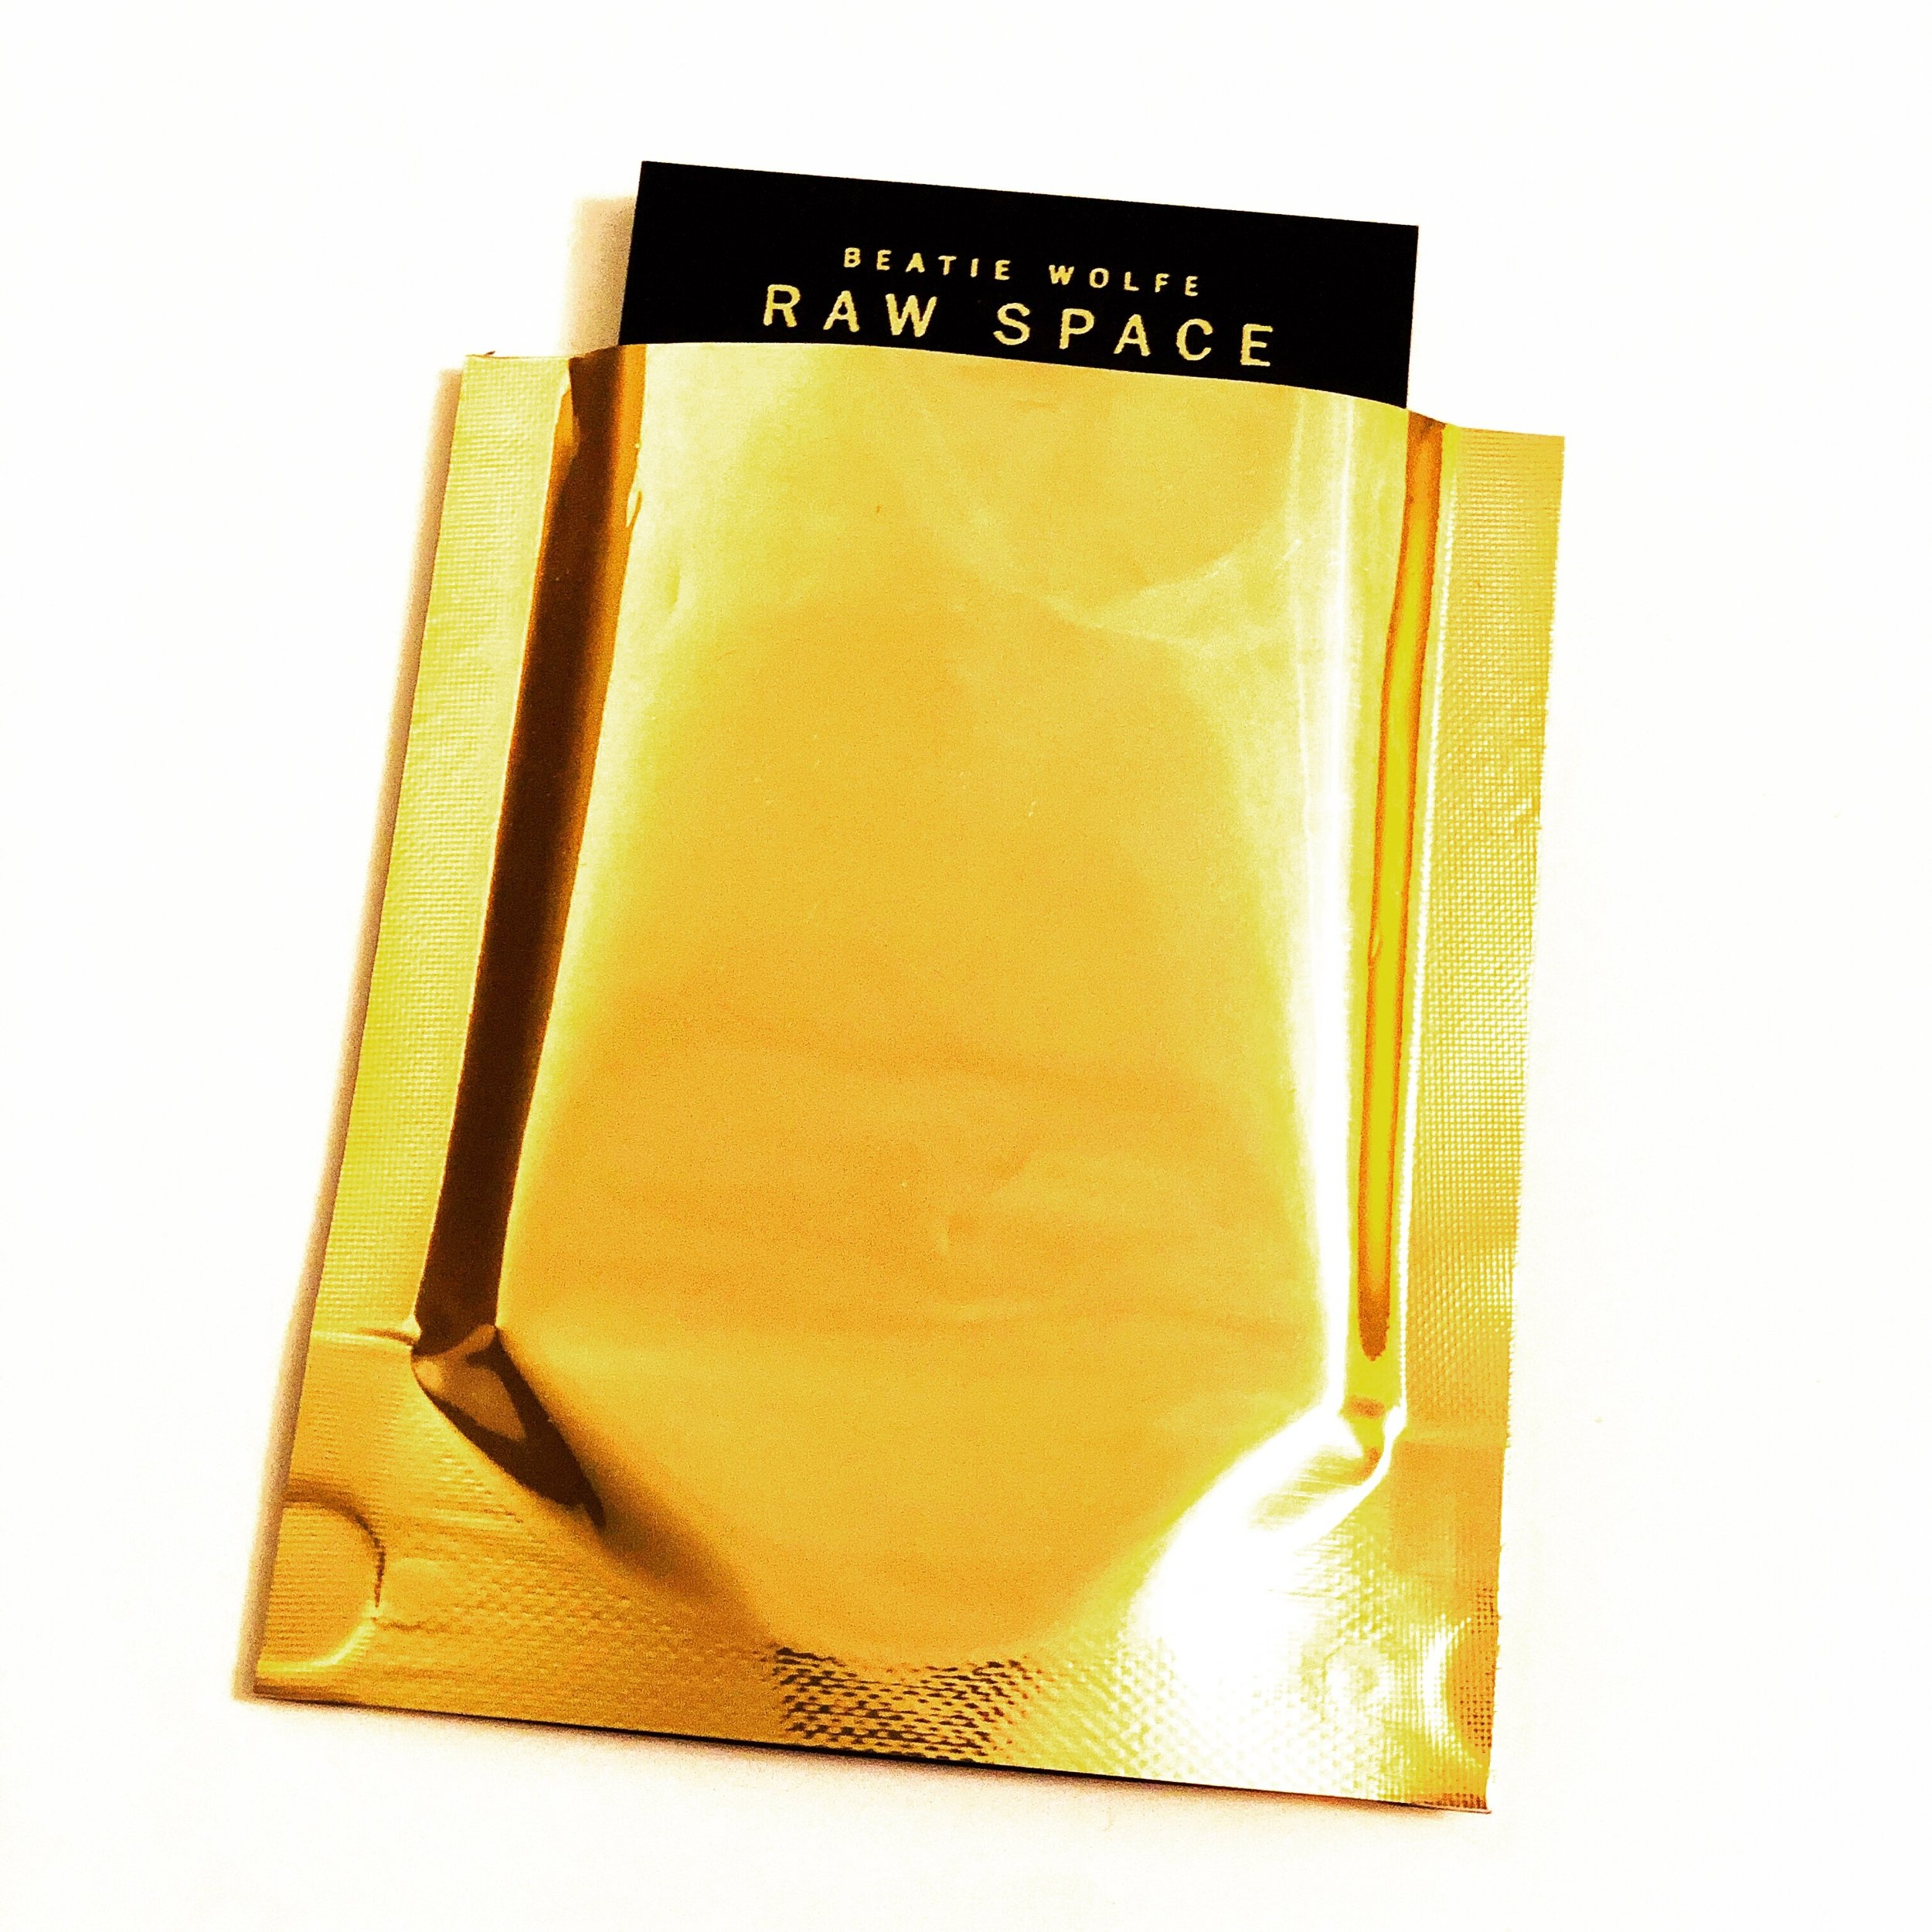 Raw Space Album Deck of Cards